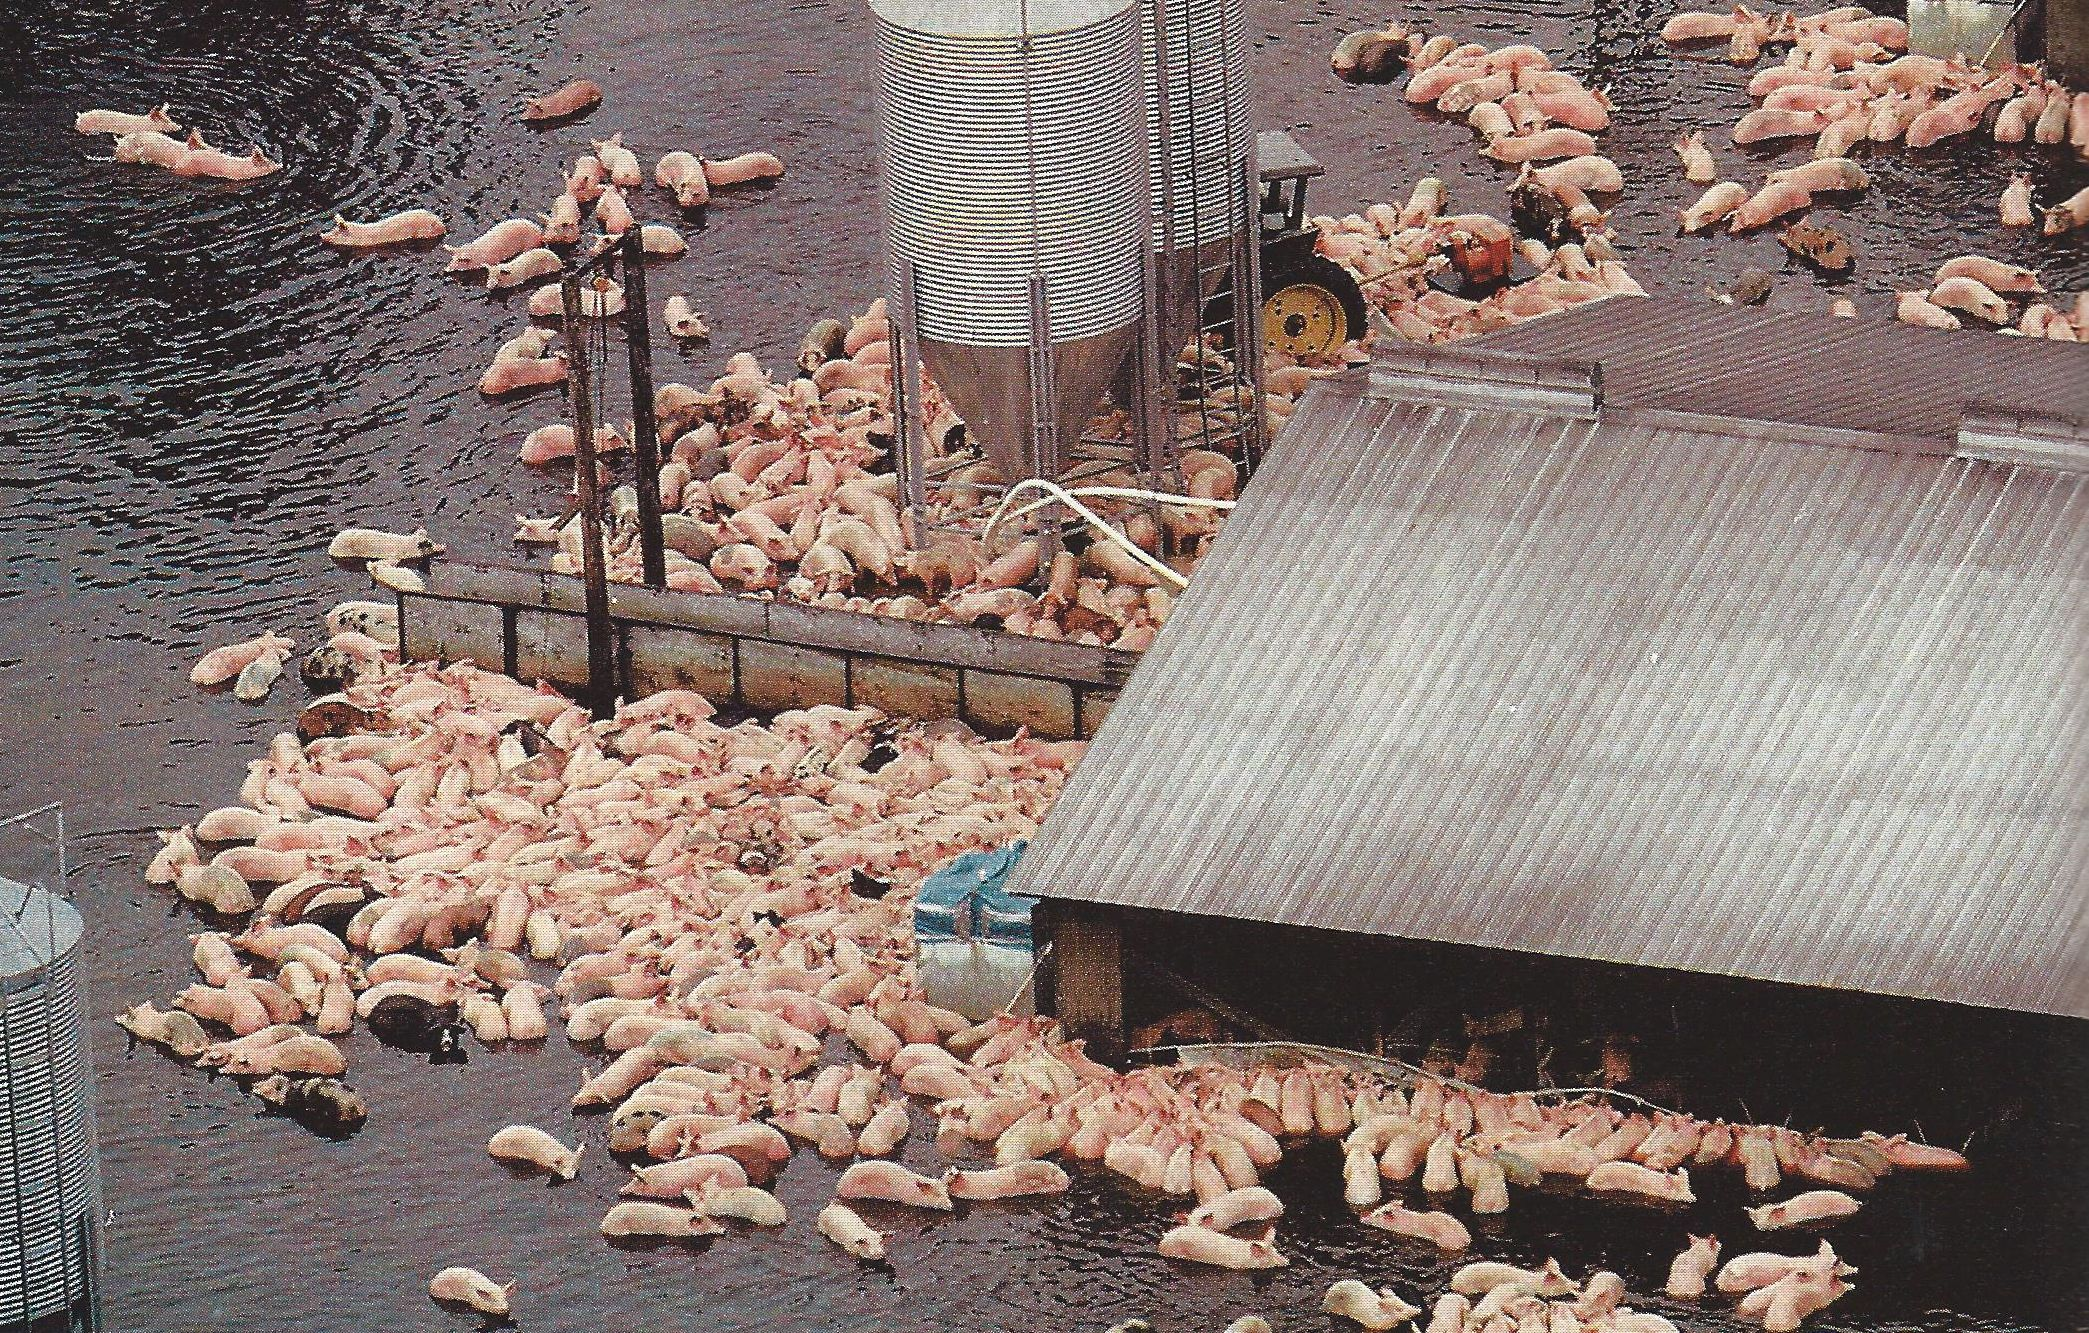 Pigs Struggle To Stay Alive On One Of The Giant North Carolina Farms Where Flood Waters From Hurricane Floyd Are Sluggish To Re Hurricane Floyd Flood Hurricane